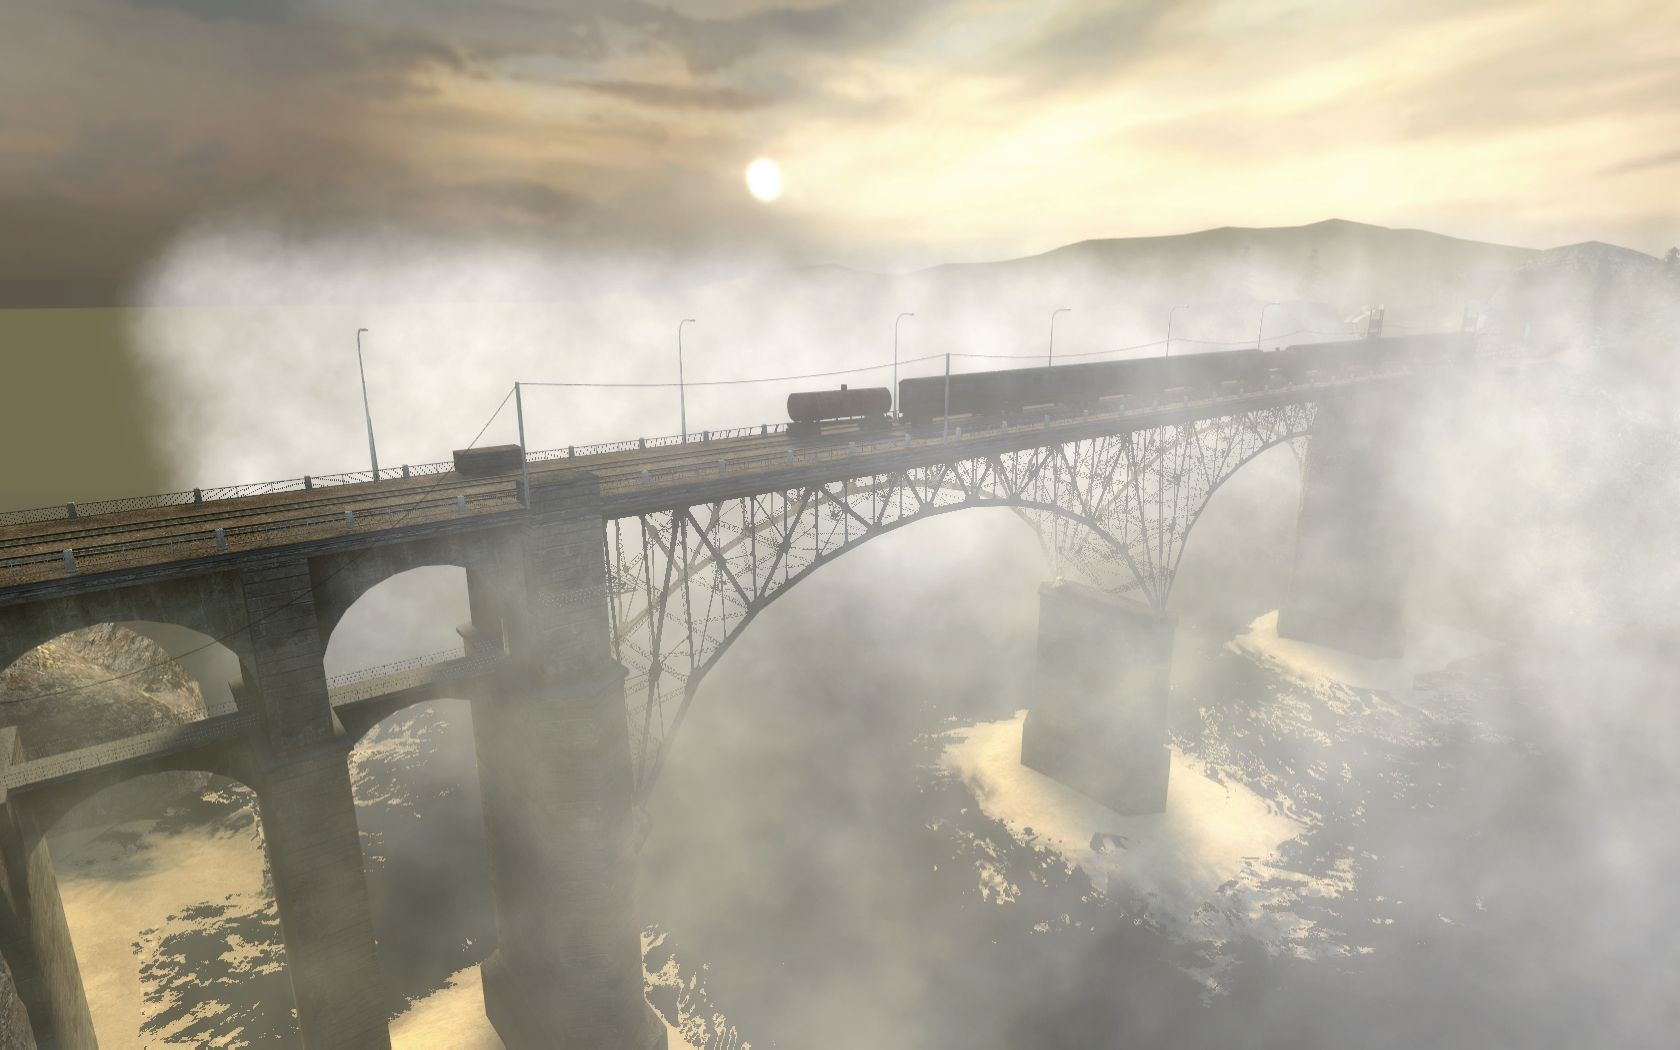 This is my favorite part of Half Life 2 The long bridge near the 1680x1050